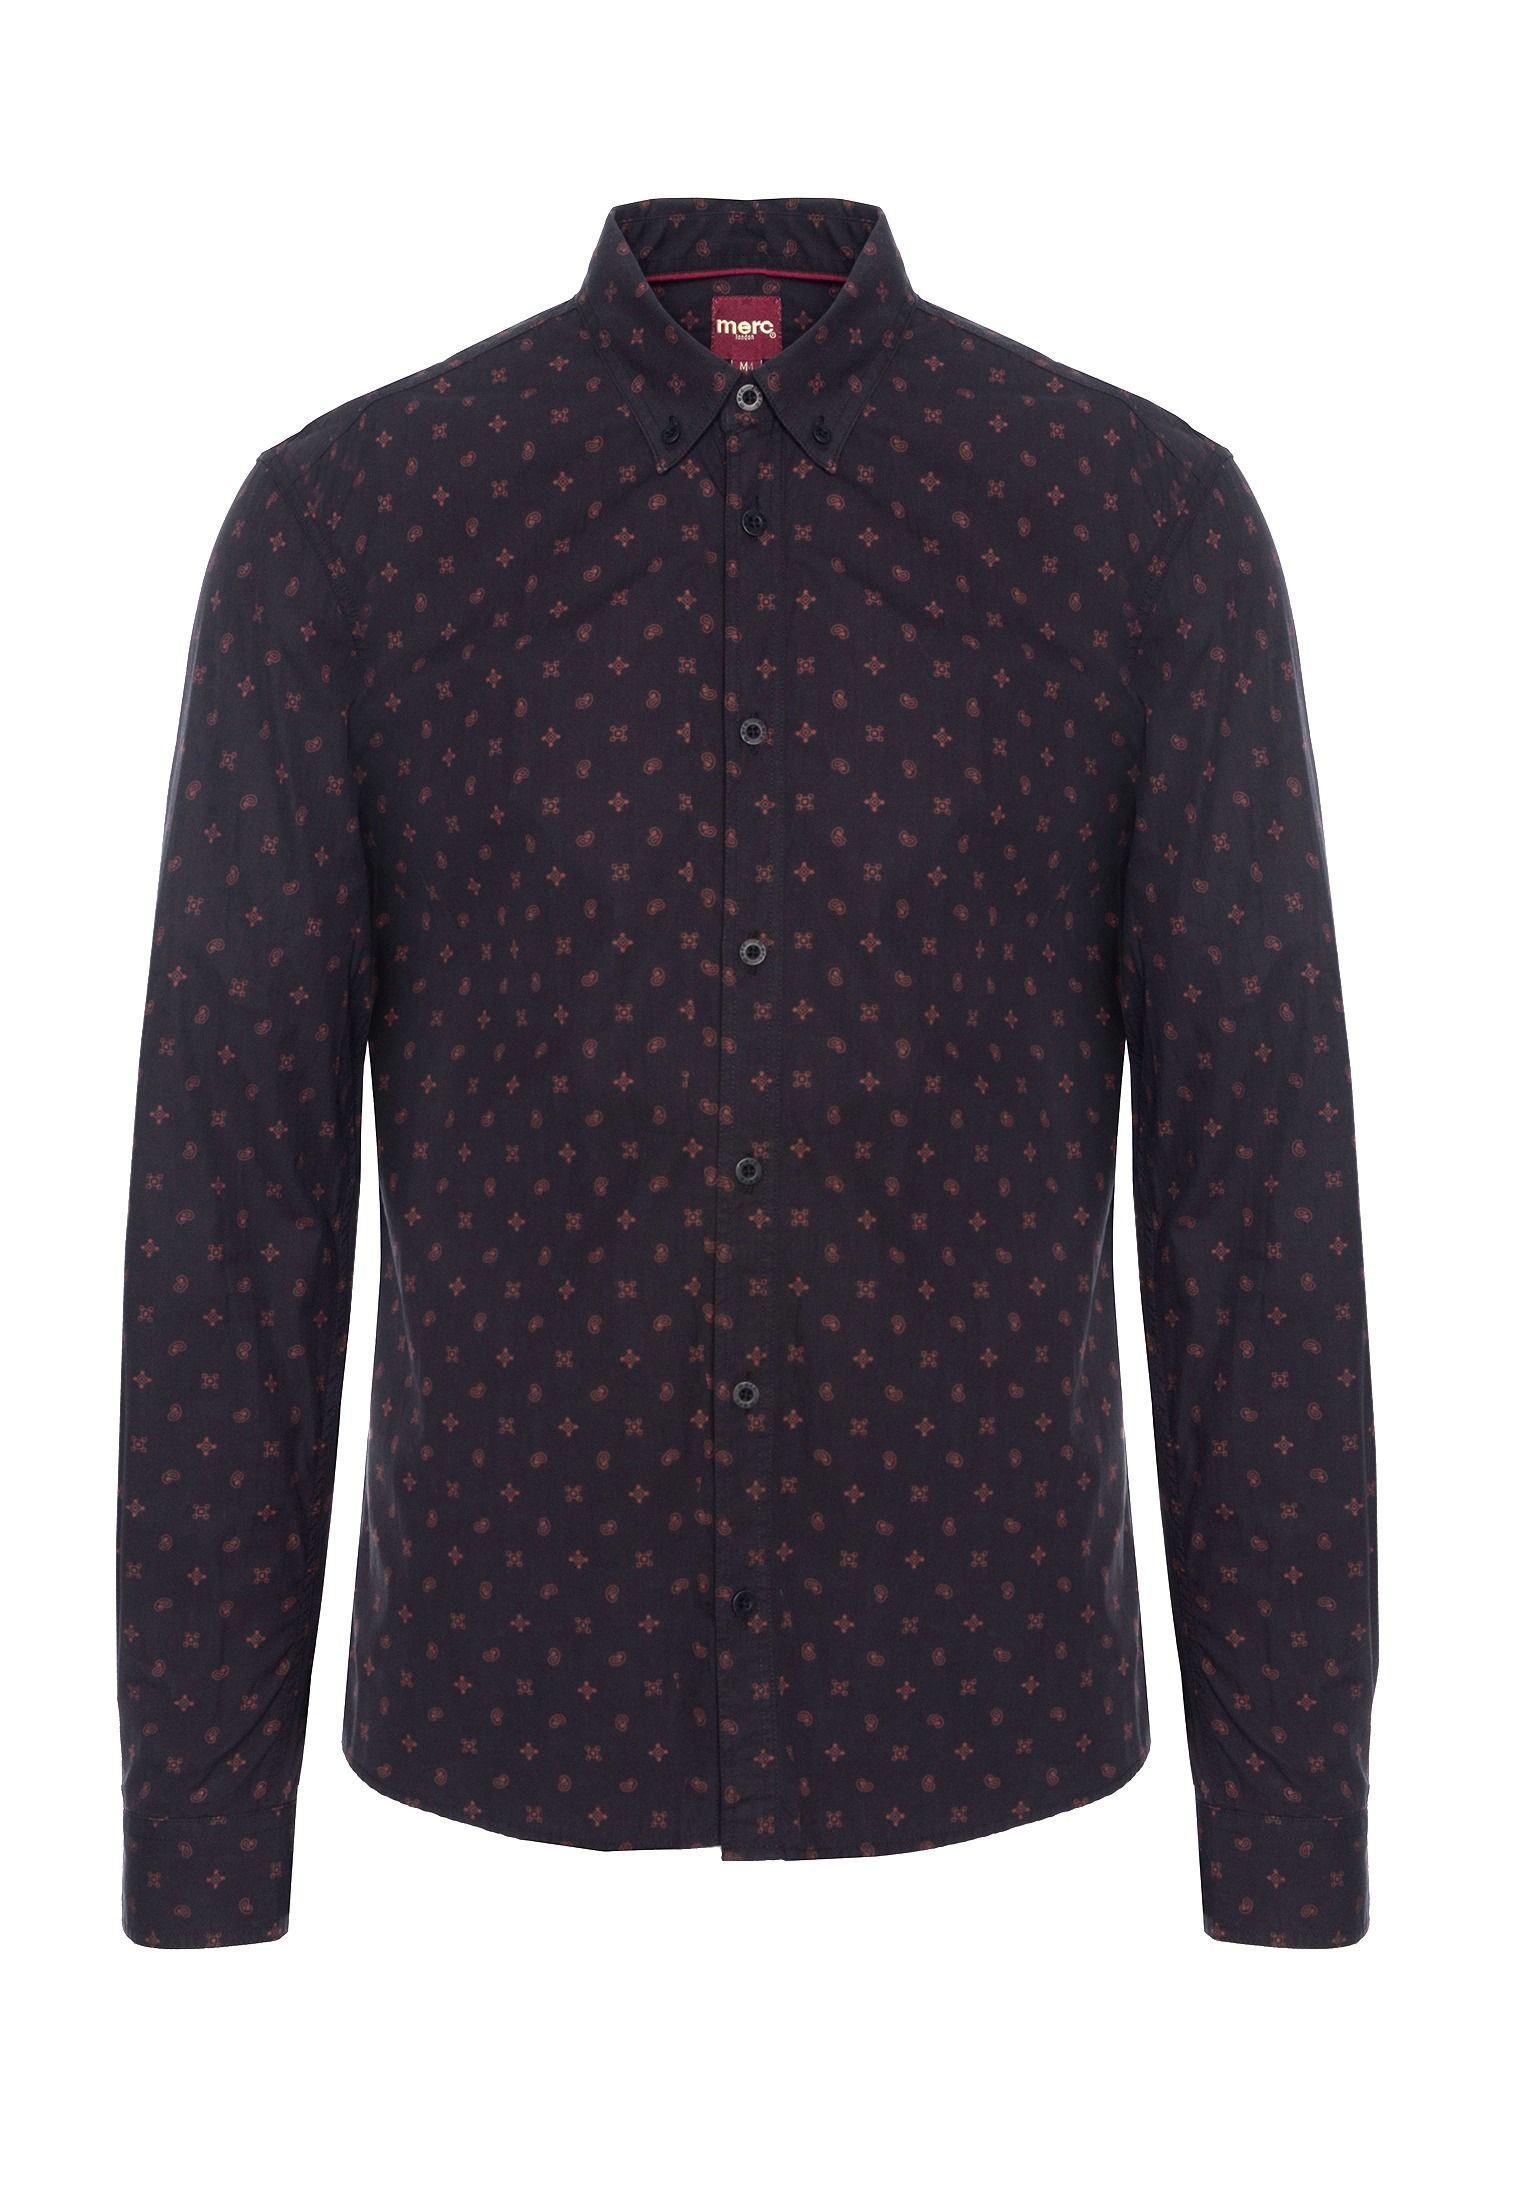 Worple Mens Long Sleeve Cotton Shirt With Geo Print In Black